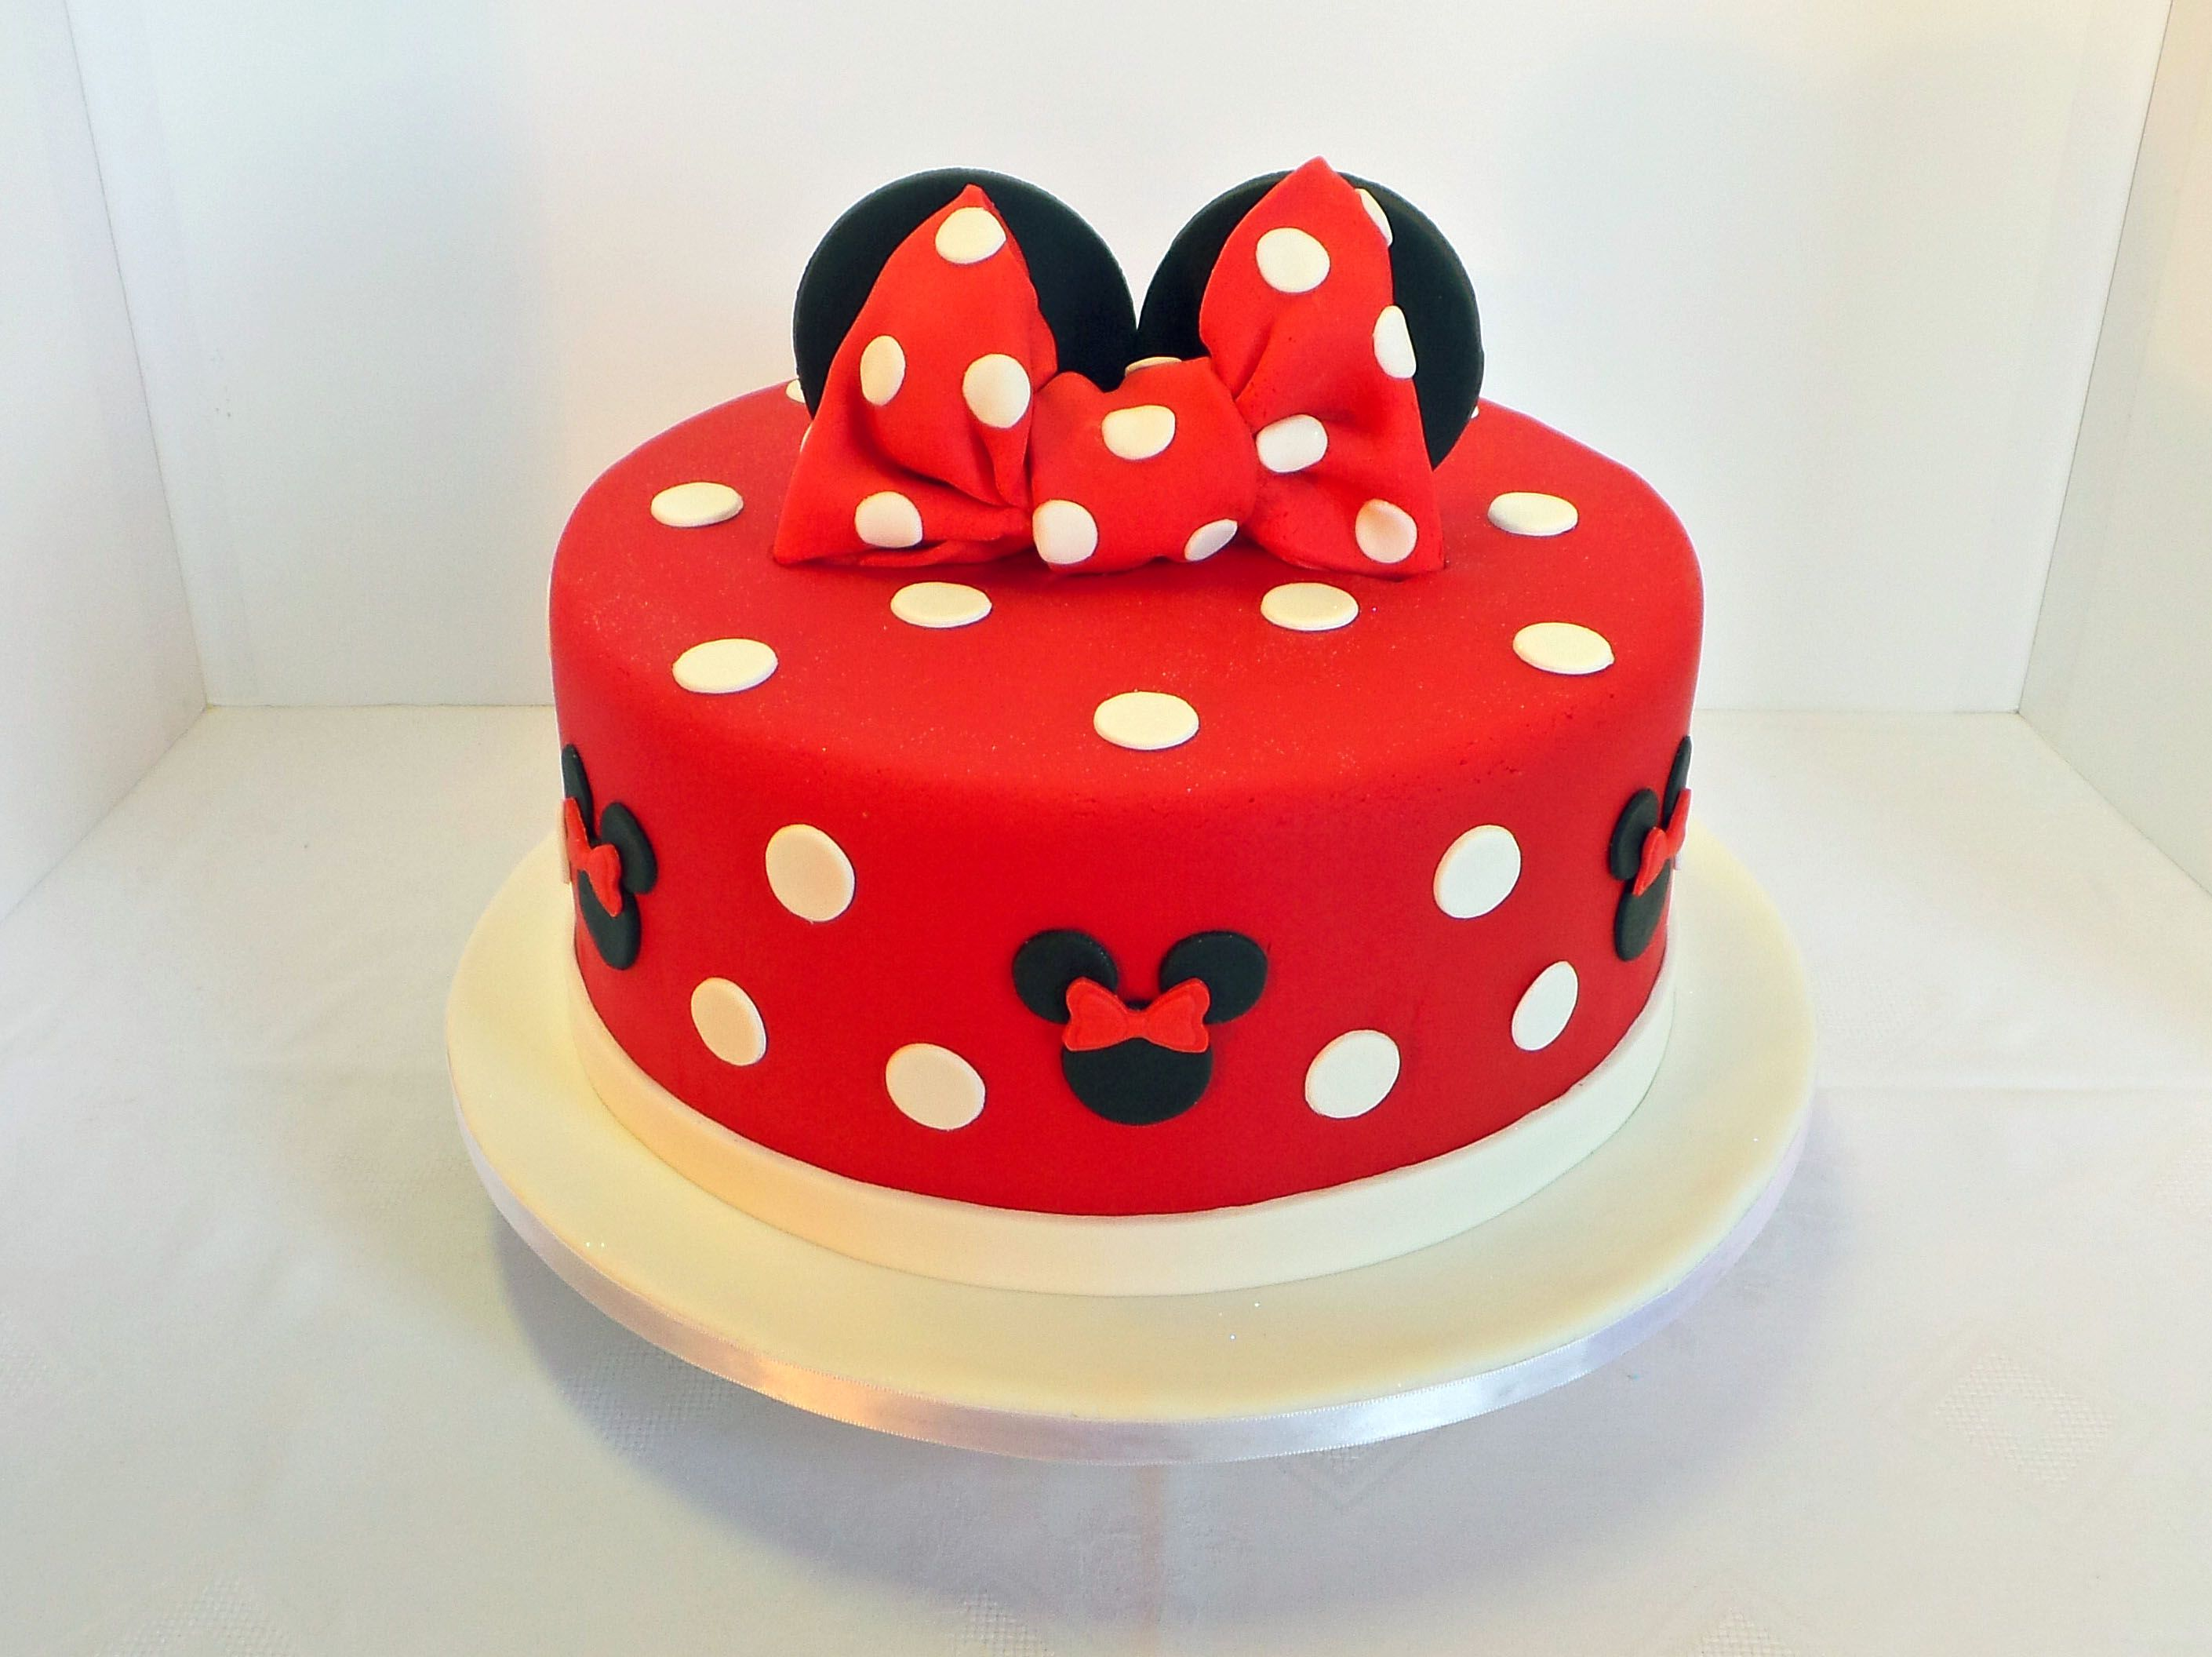 Frases Para Aniversario Cake Ideas And Designs: Minnie Mouse Birthday Cake. Design Was Brought In By